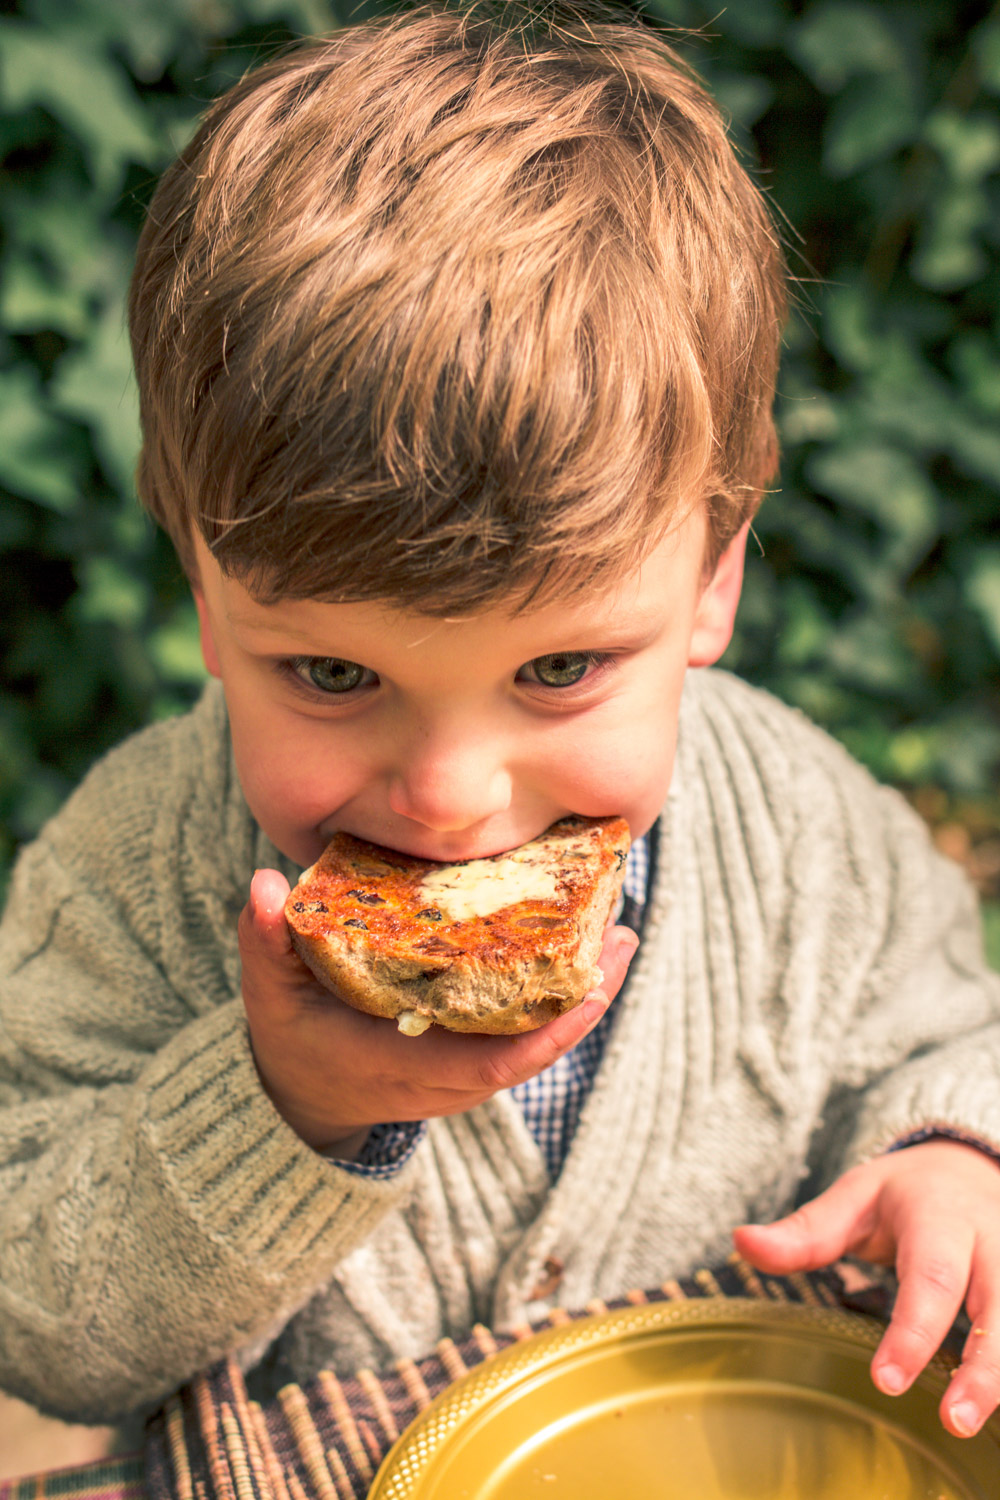 Little boy wearing a knit cardigan eating a Bakers Delight Hot Cross Bun at Autumn Easter Egg Hunt